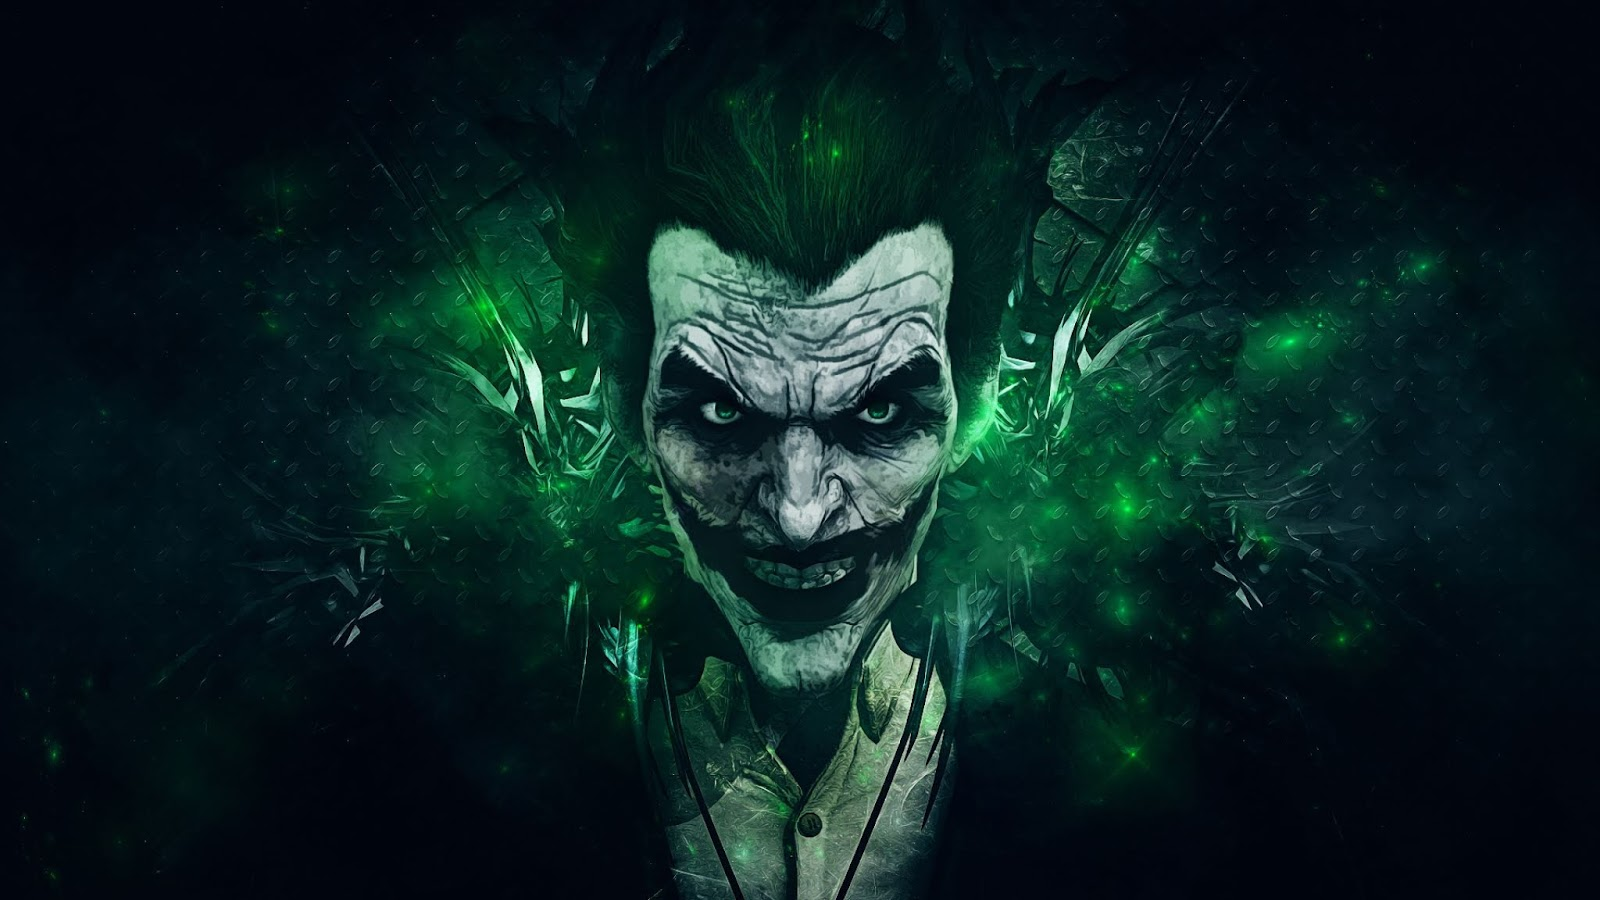 joker hd wallpapers best images and background images-whatsappsher